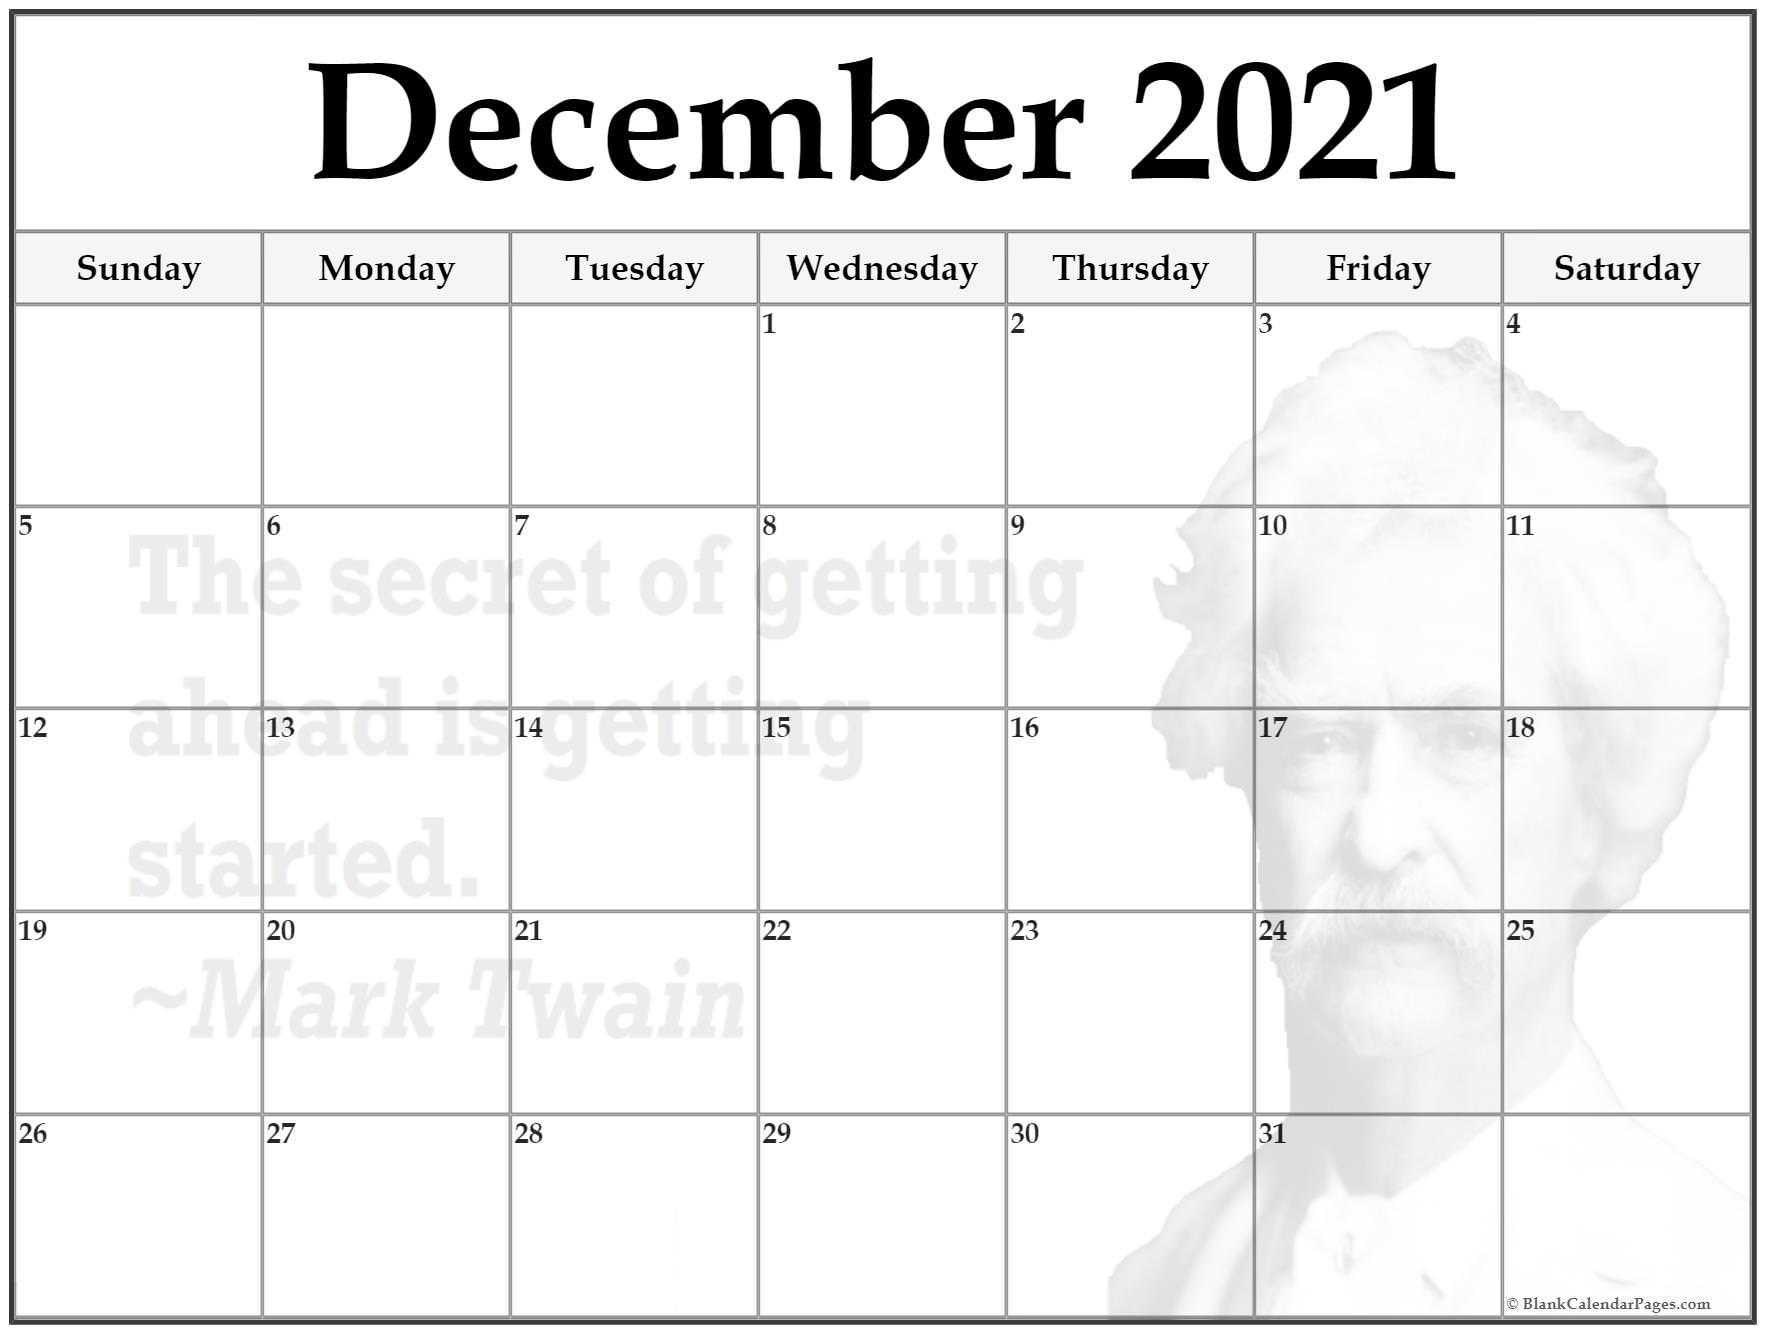 December 2019 printable quote calendar template. The secret of getting ahead is getting started. ~Mark Twain